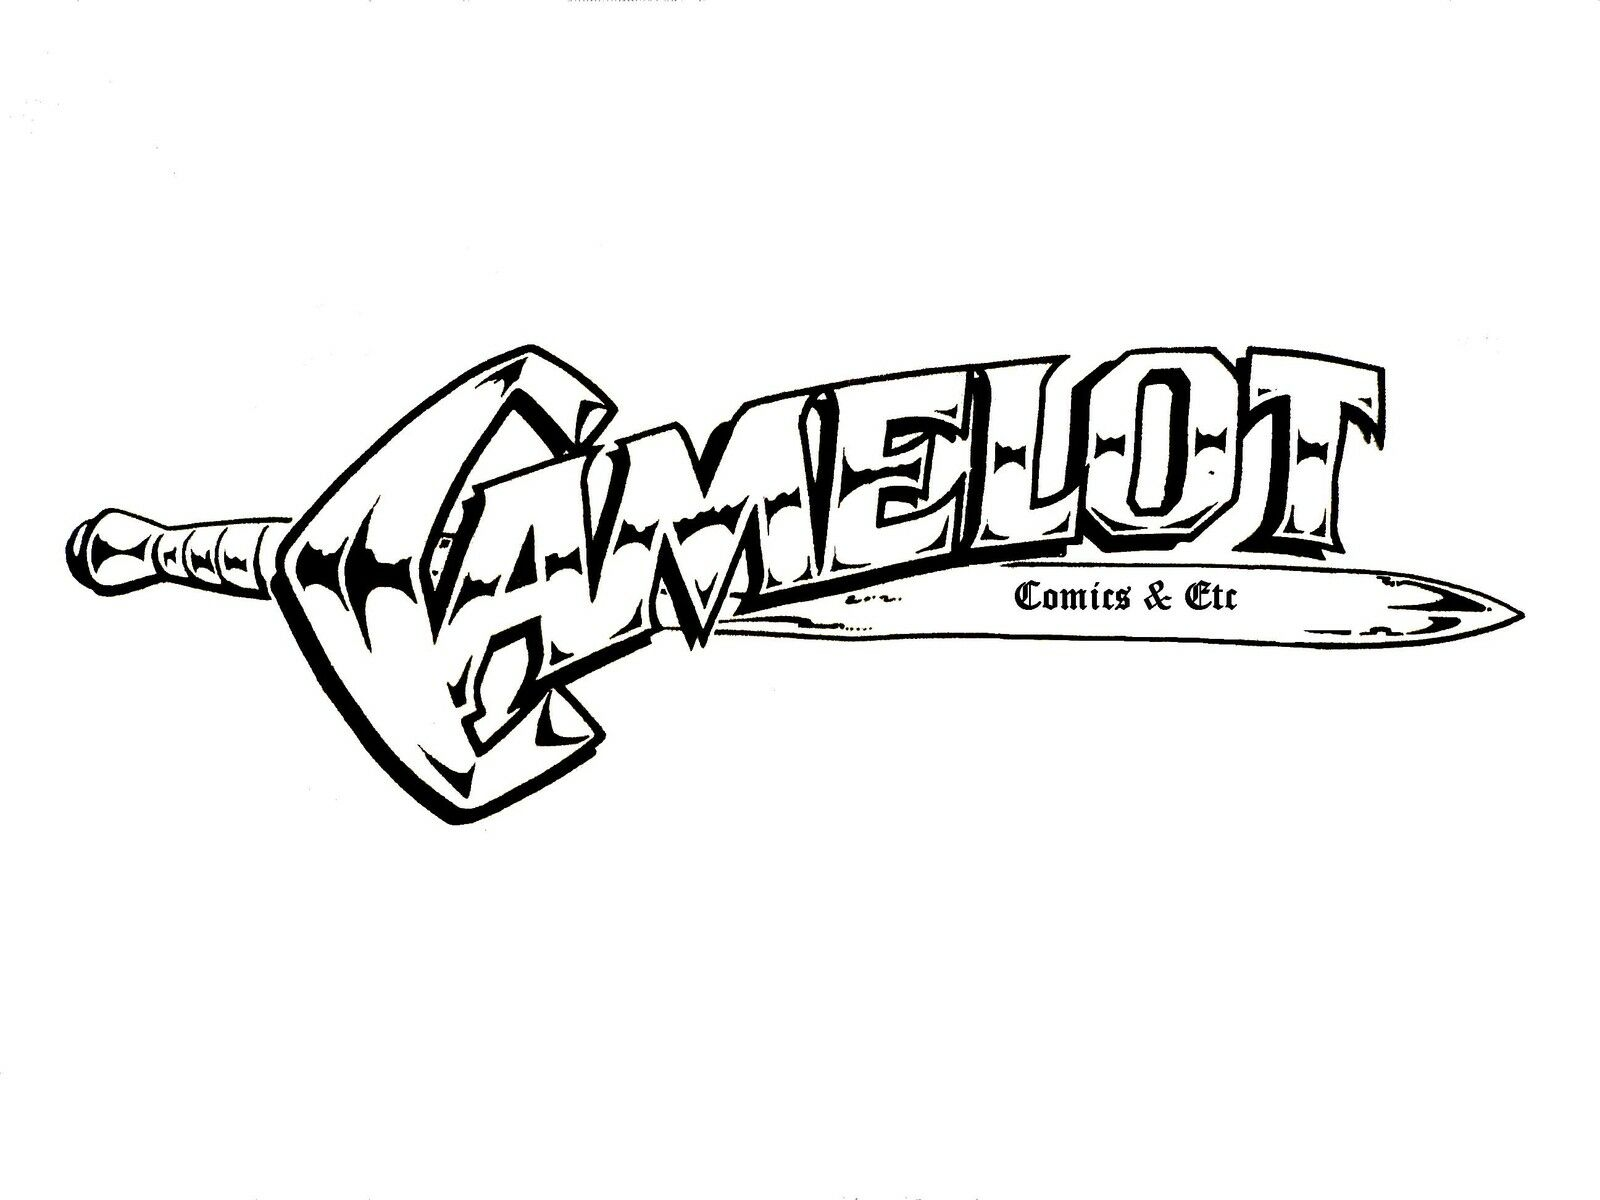 camelotcomics-etc